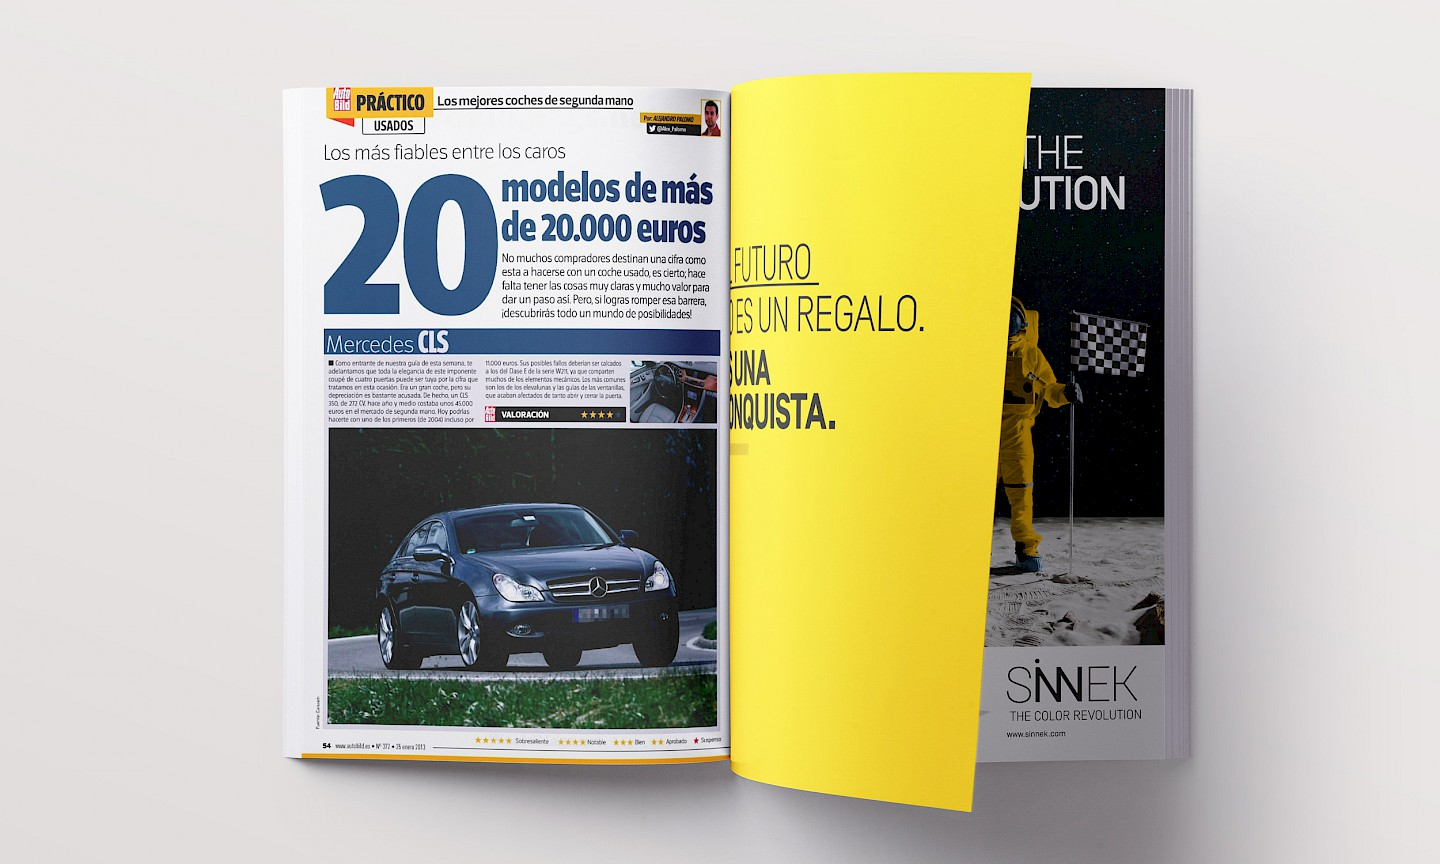 anuncio move revista03 branding sinnek